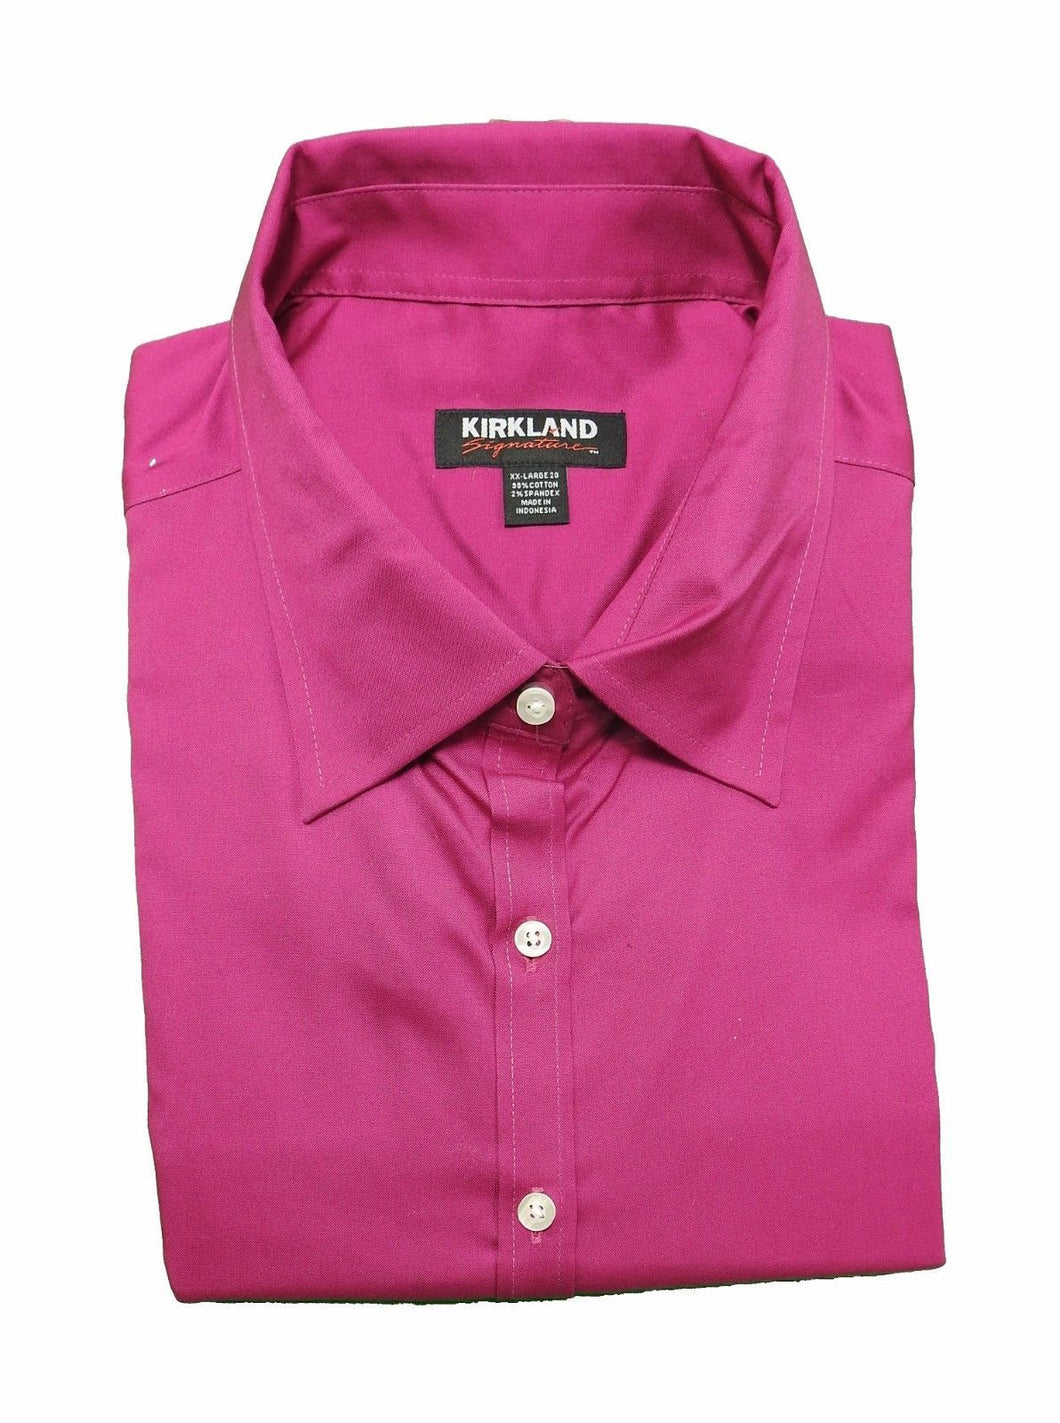 Kirkland Signature Ladies Size XX-Large (20) 3/4 Sleeve Stretch Oxford Shirt